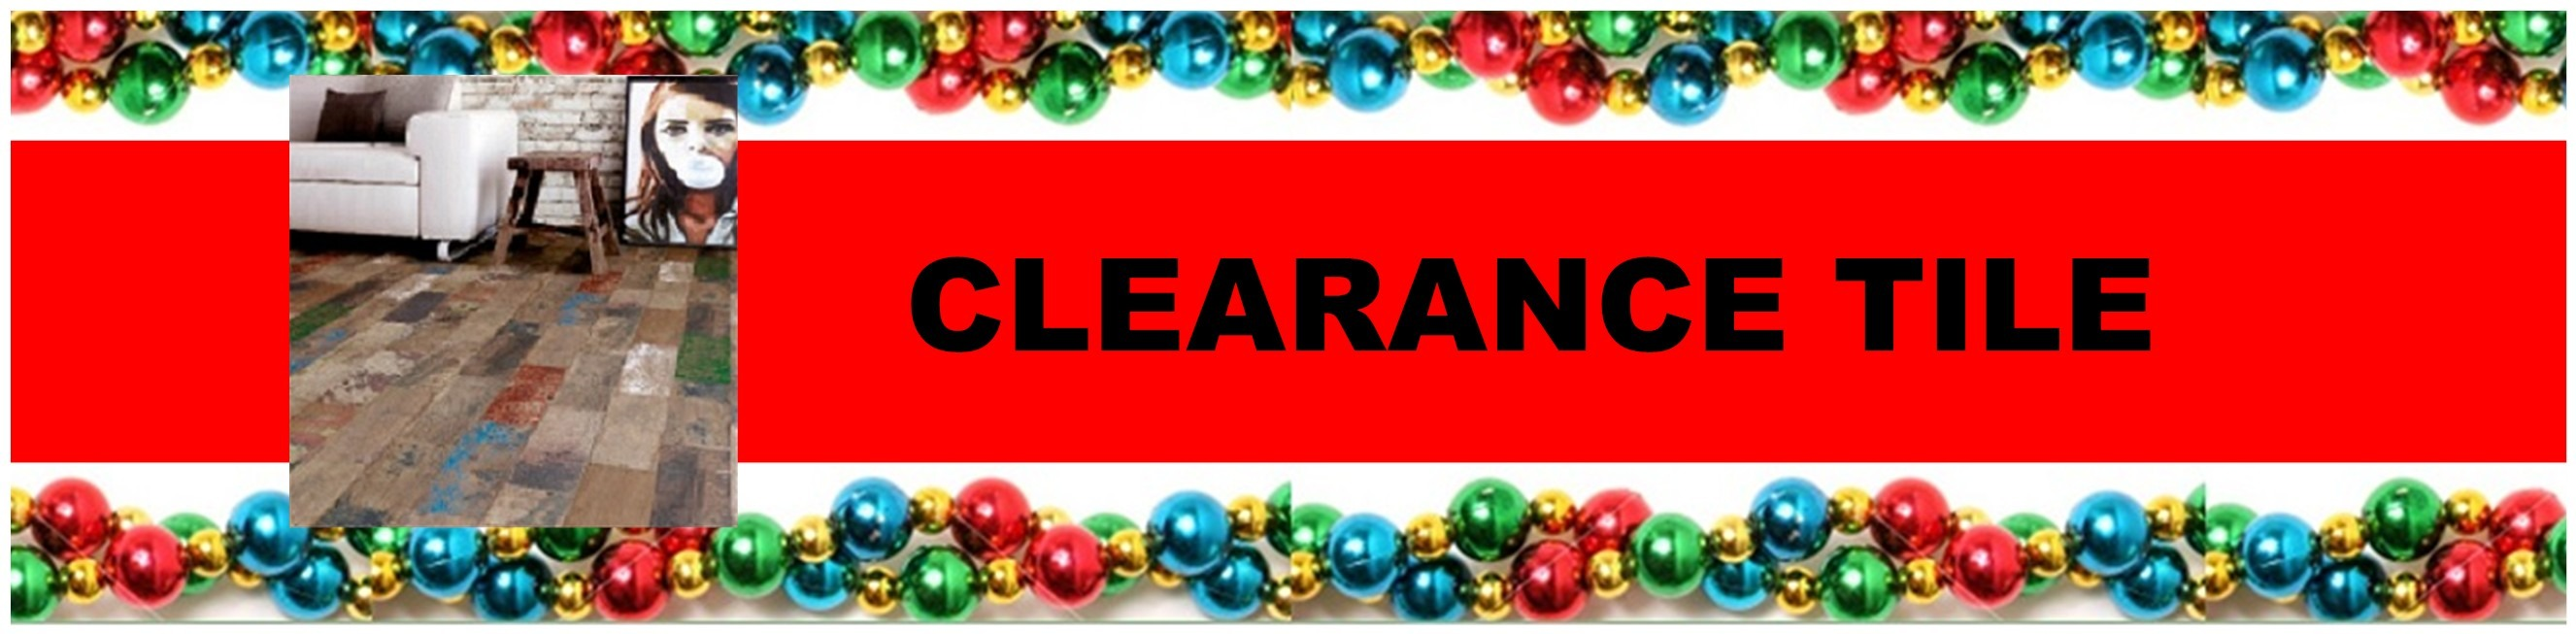 CHRISTMAS CLEARANCE TILE HEADER